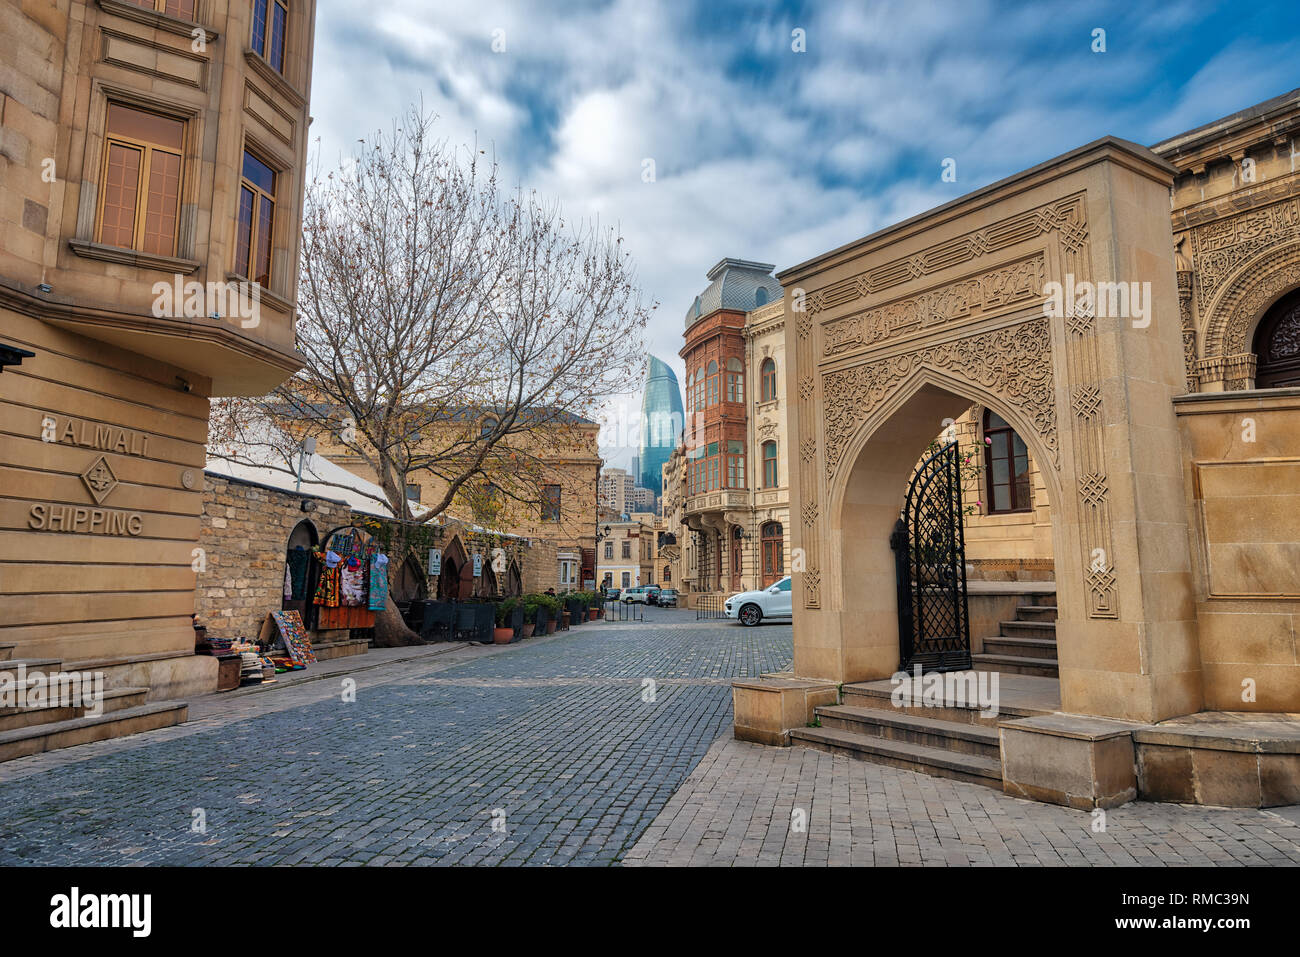 Baku Flame Towers and Old Town, Azerbaijan, taken in January 2019 - Stock Image